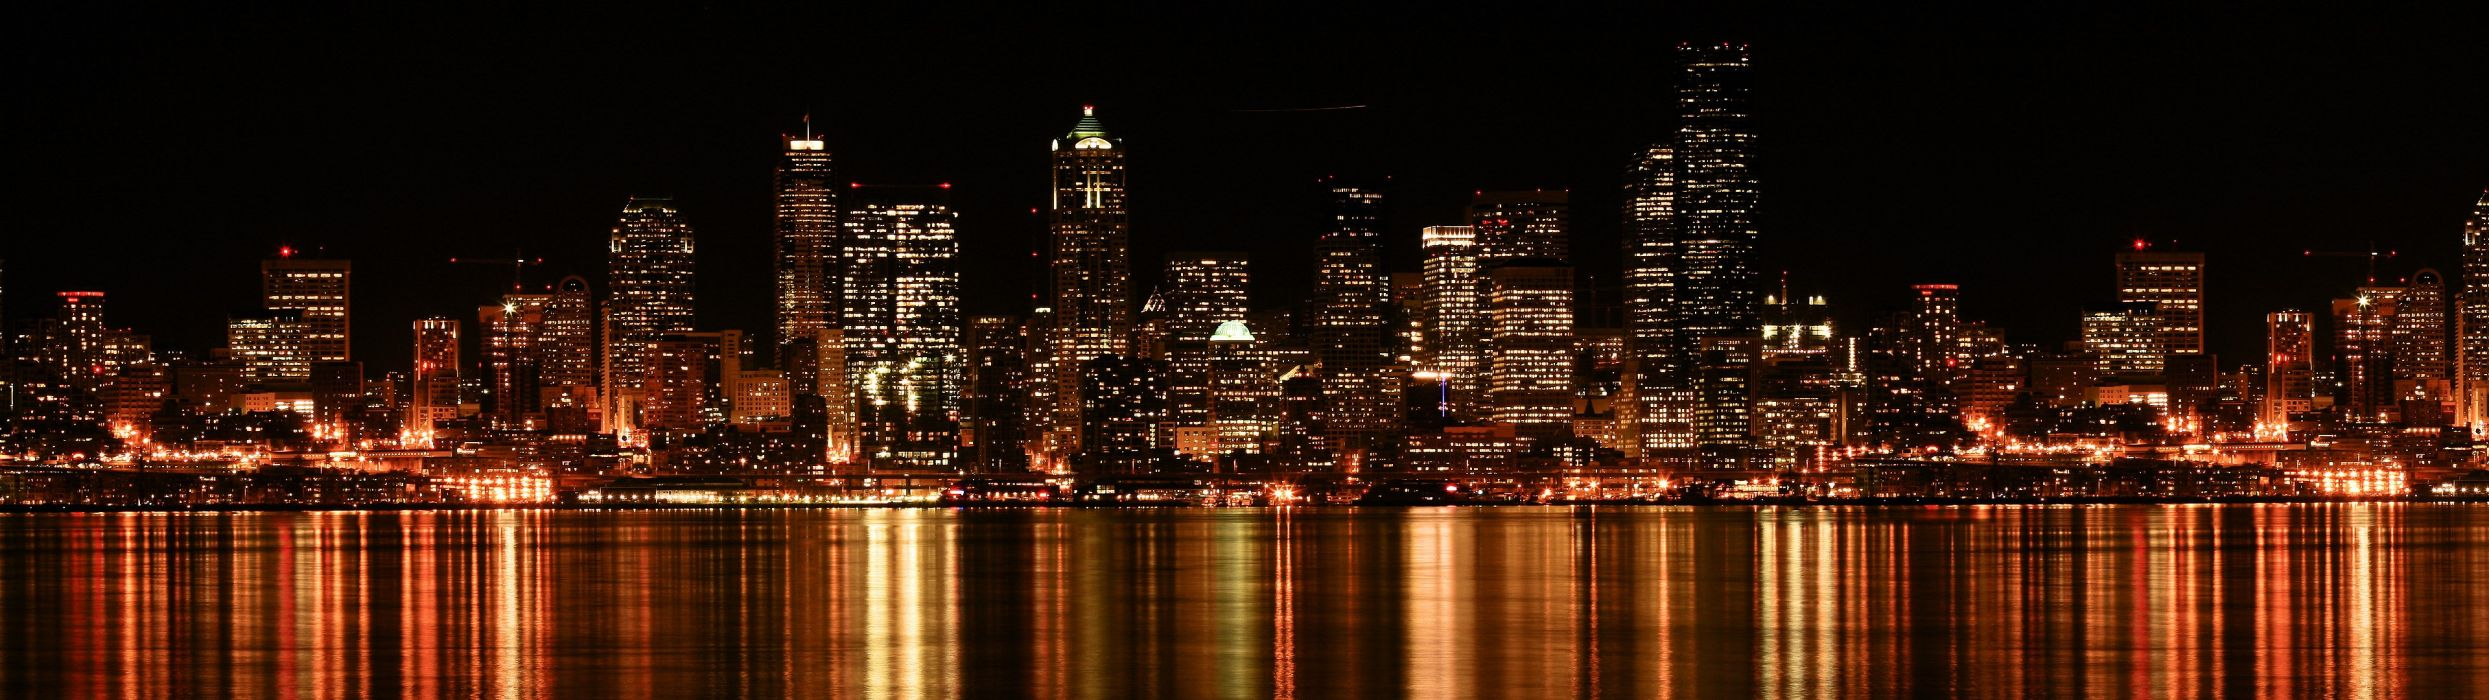 cityscapes night buildings reflections wallpaper